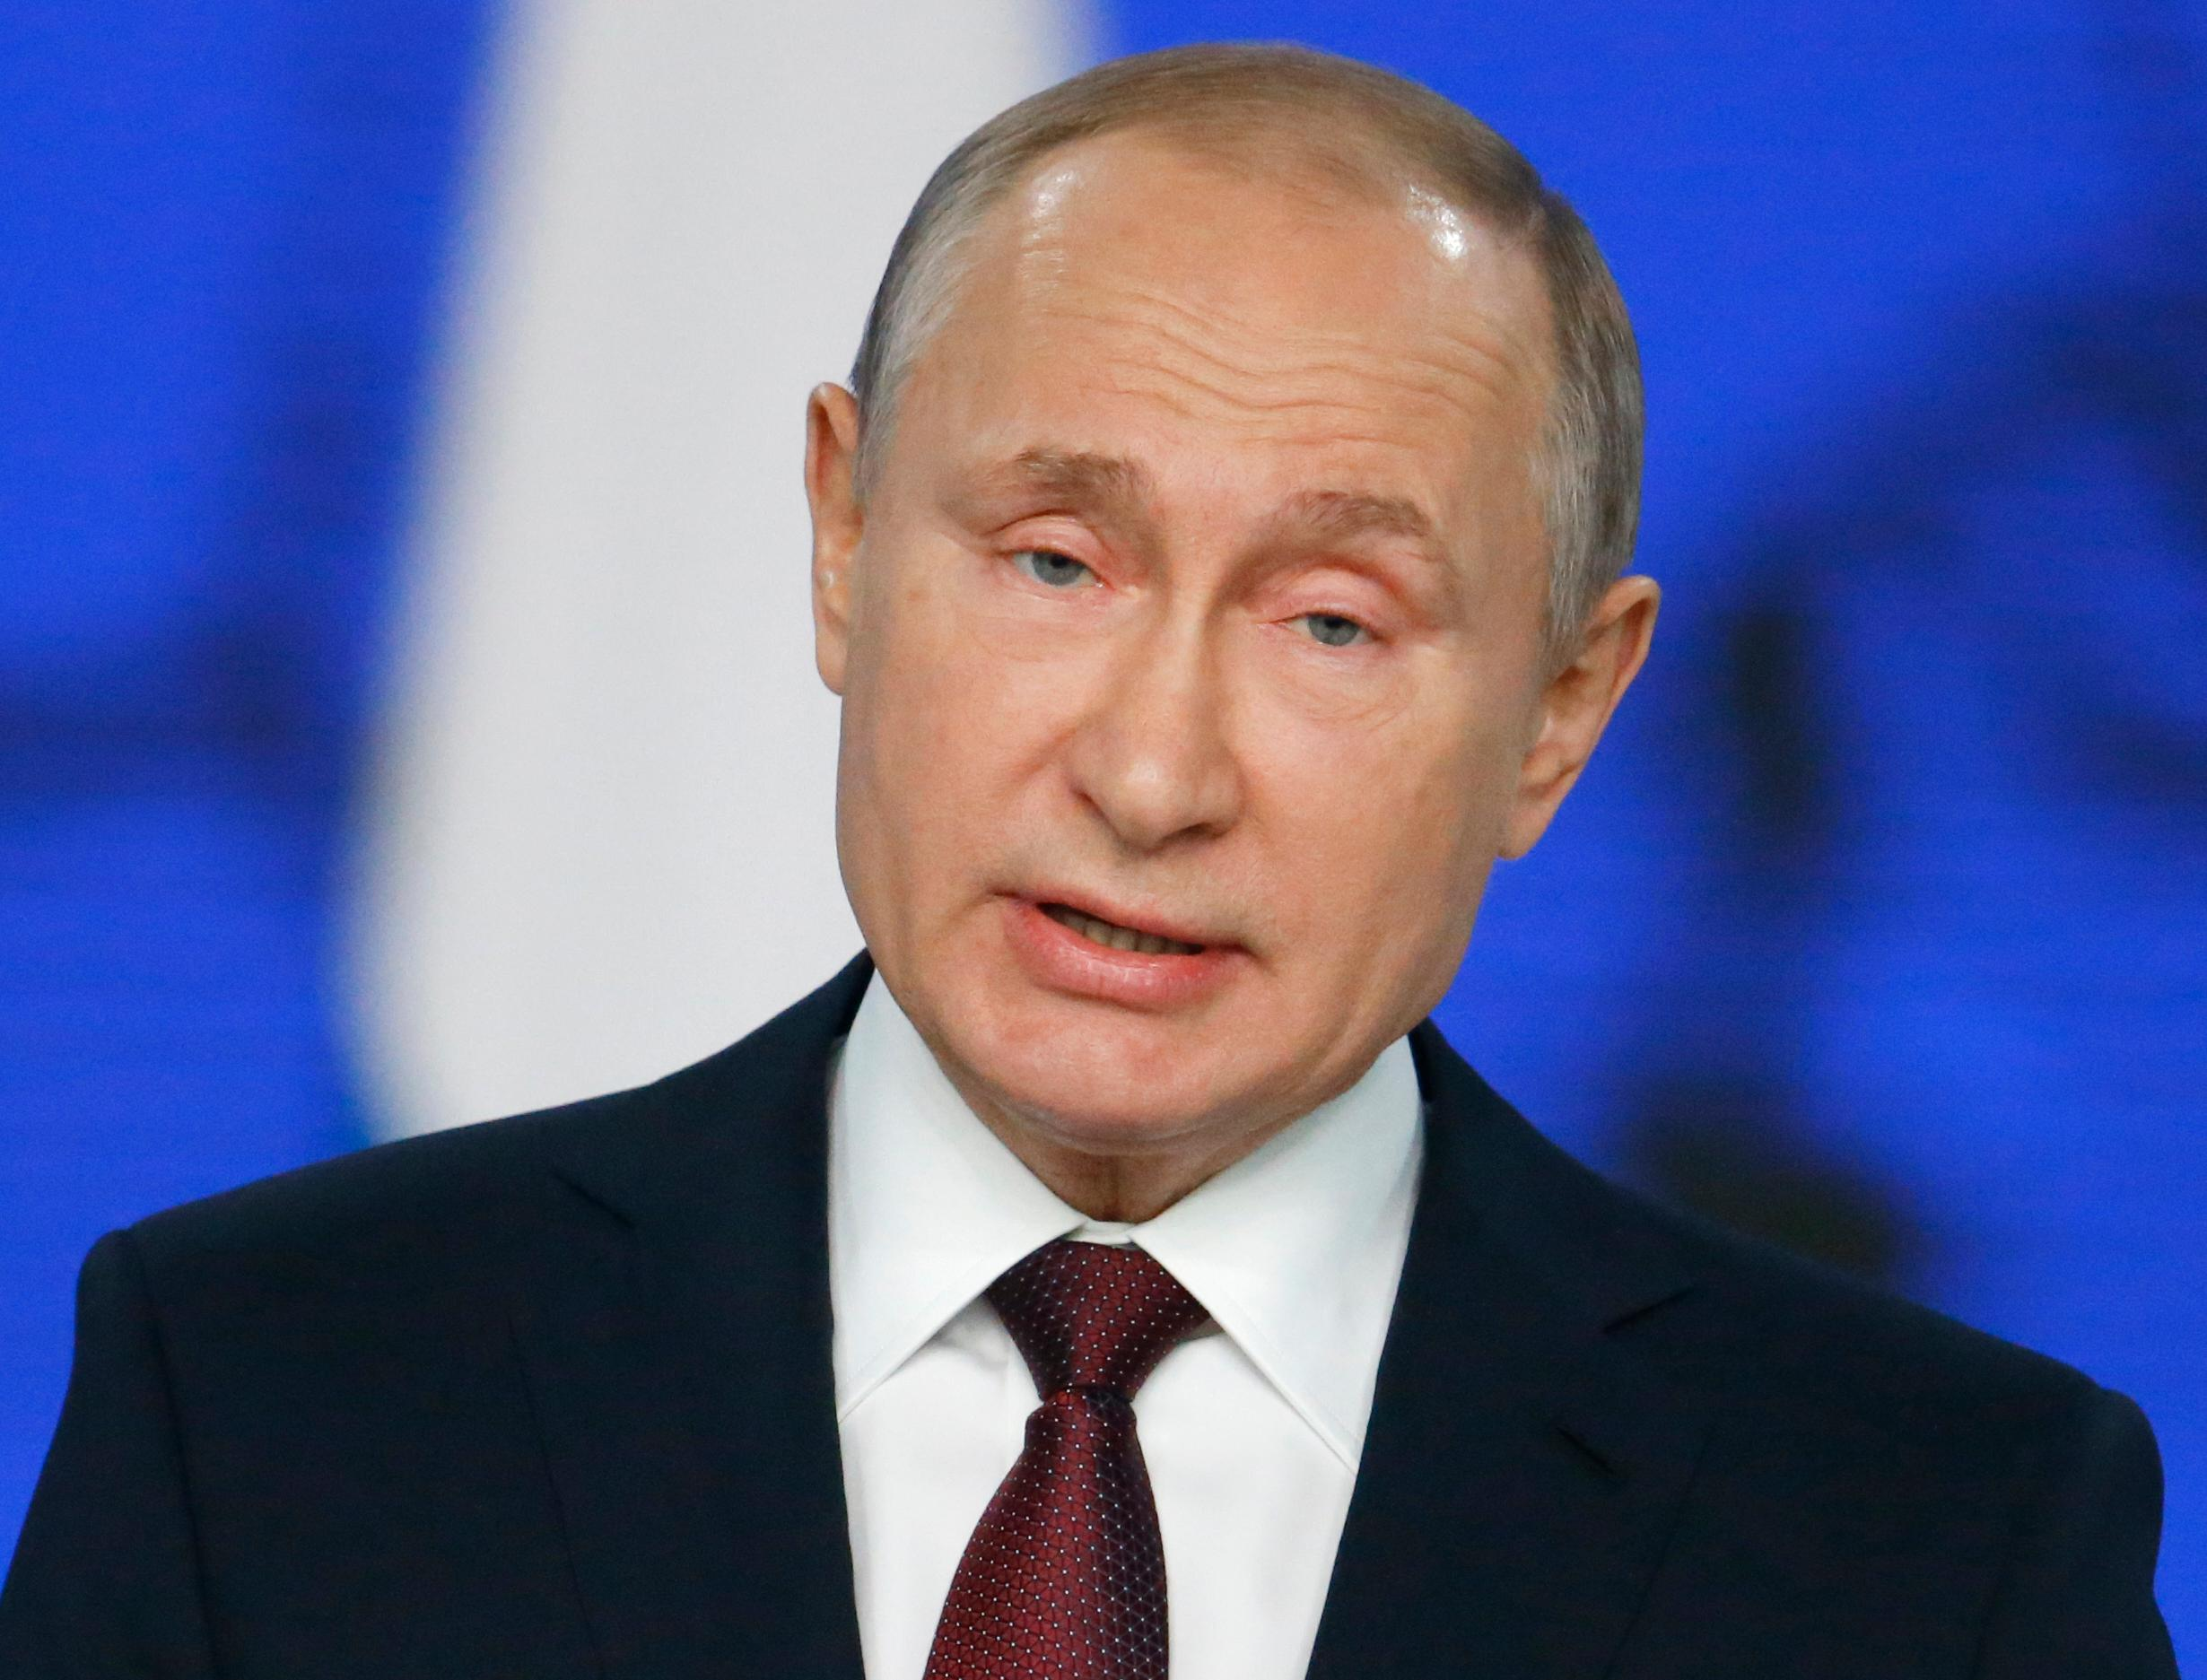 Russian President Vladimir Putin delivers a state-of-the-nation address in Moscow, Russia, Wednesday, Feb. 20, 2019. Putin said Russia needs to focus on raising living standards. (AP Photo/Alexander Zemlianichenko)